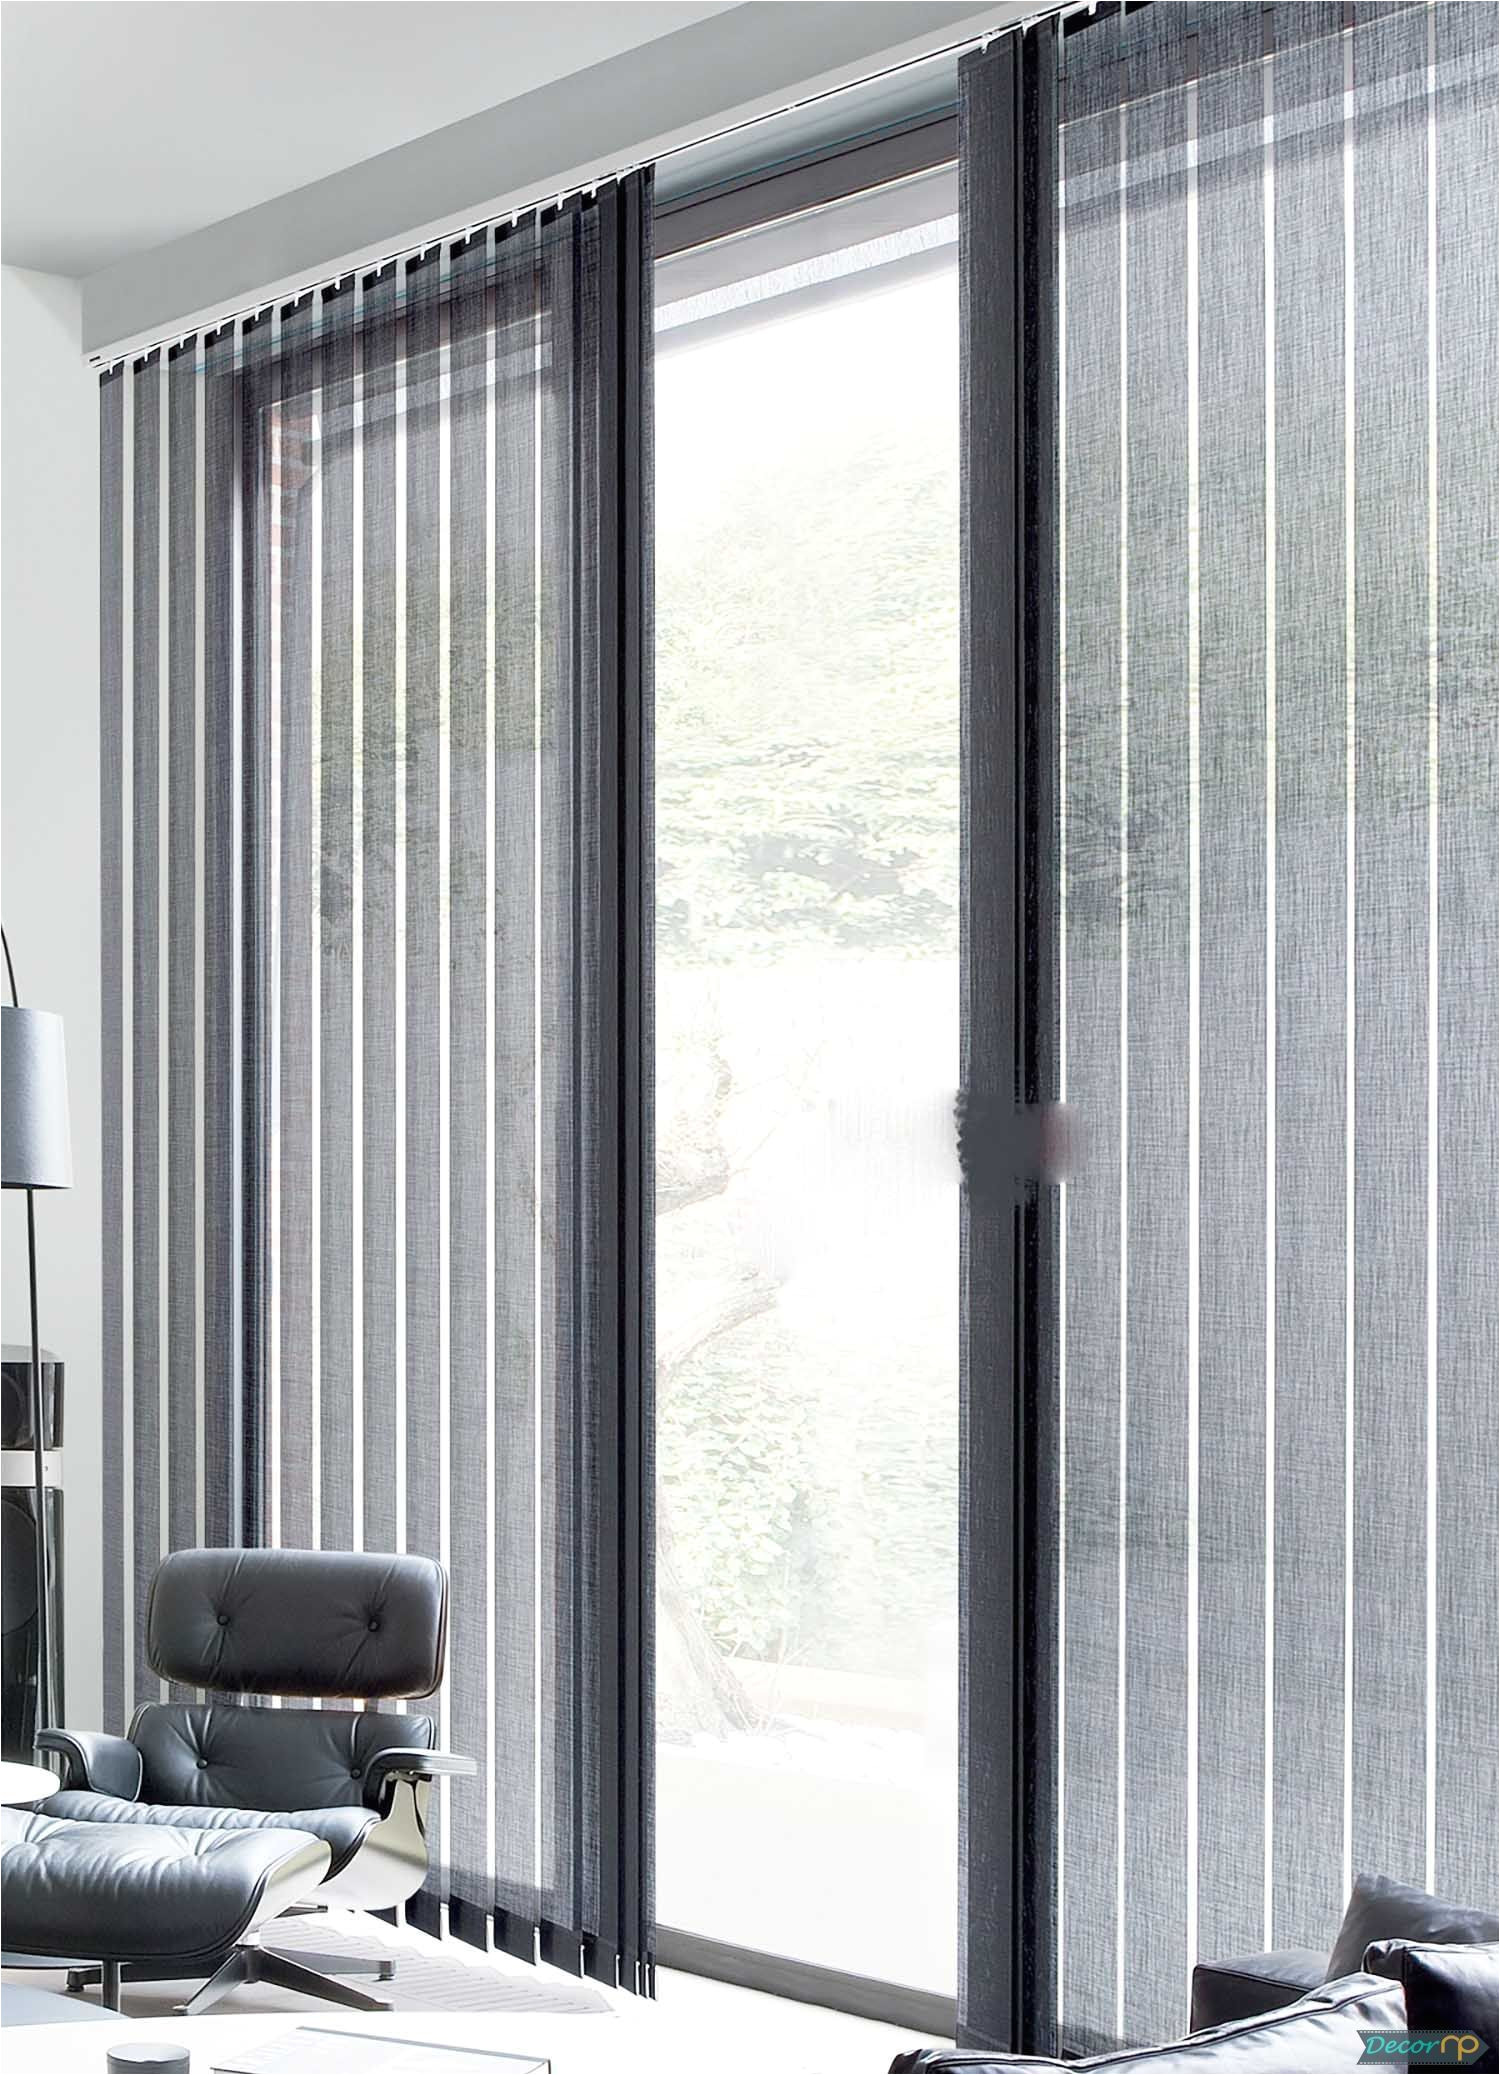 Have Ikea Discontinued Wooden Blinds 15 Vertical Modern Blinds Style In 2018 Blinds2018